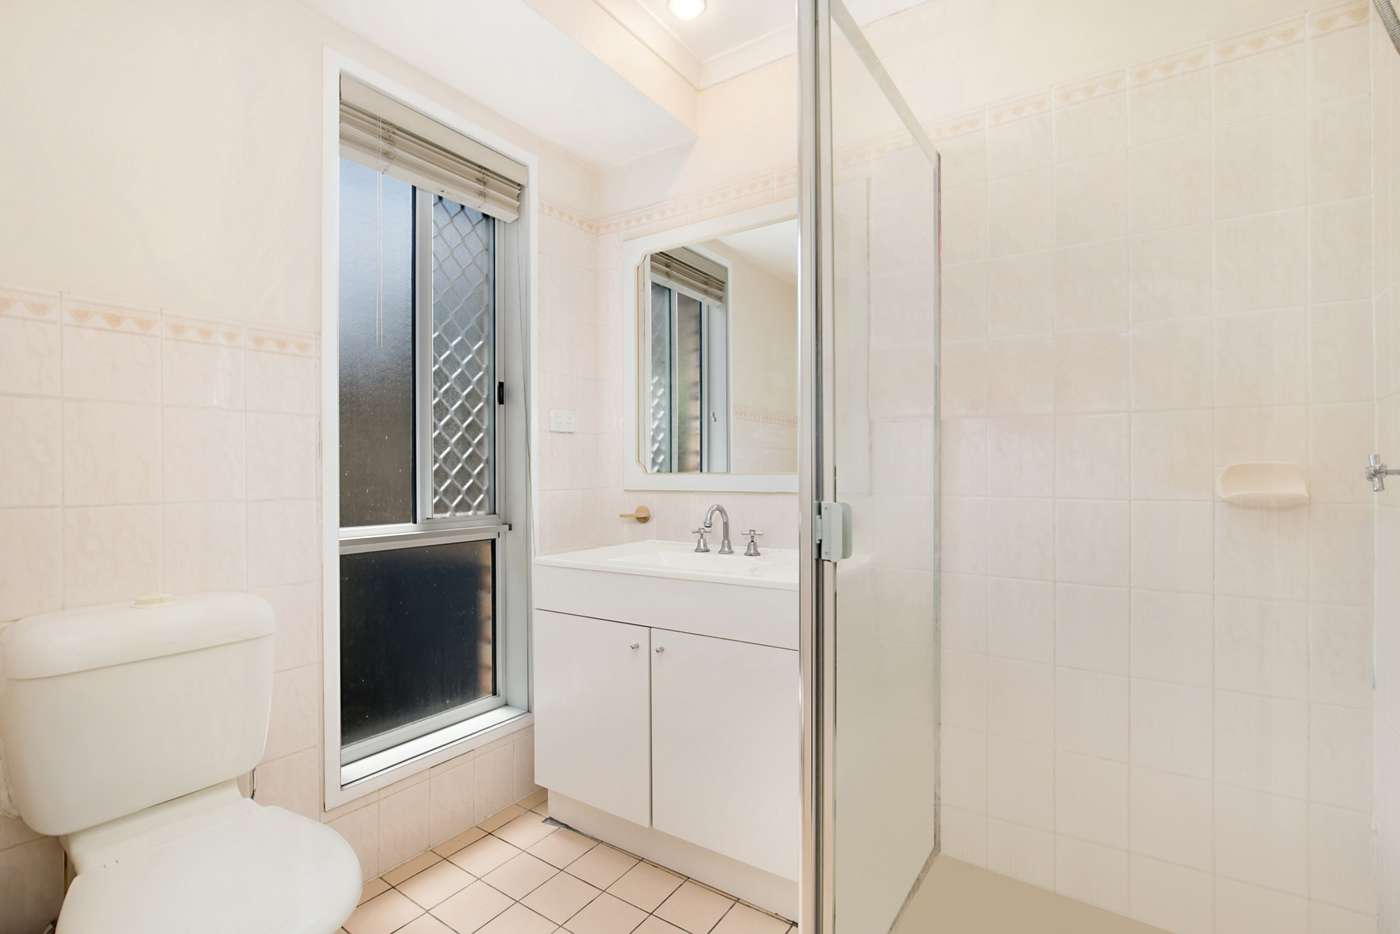 Sixth view of Homely house listing, 4 Gregwal Ct, Oxley QLD 4075